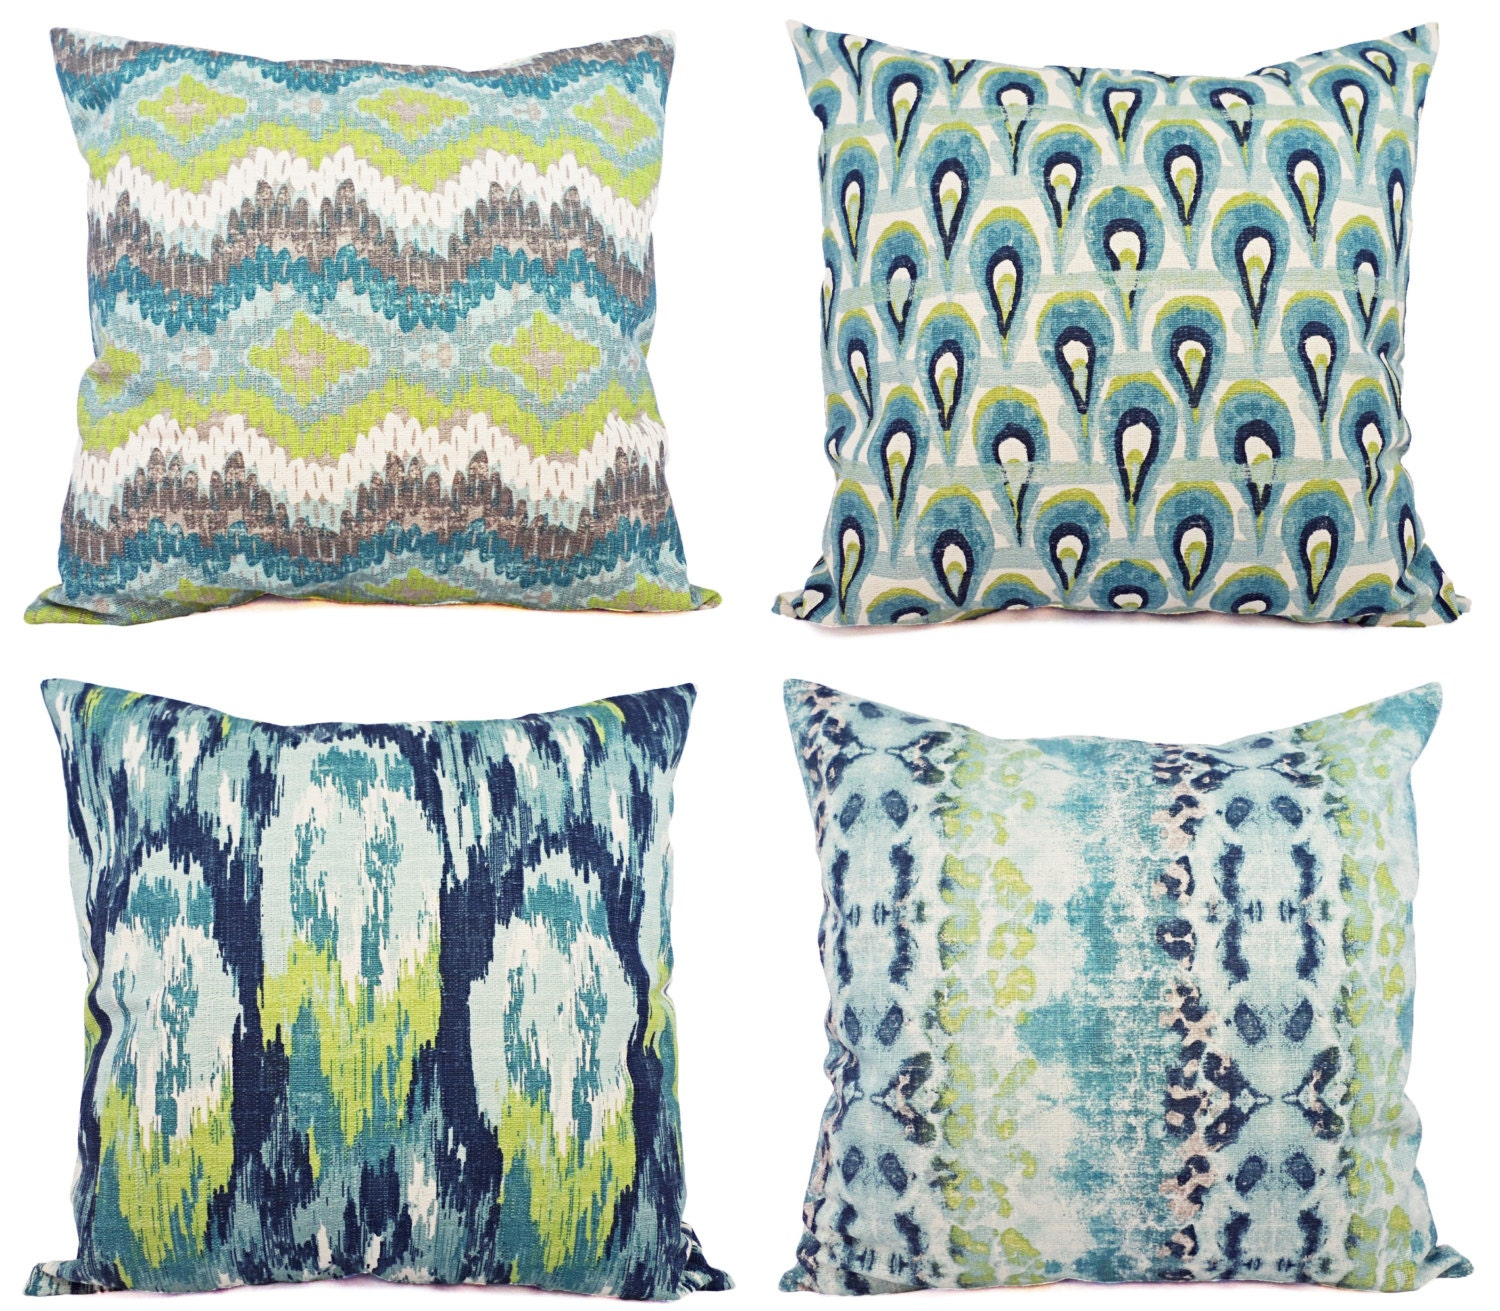 Two Throw Pillow Covers Blue and Green Ikat by CastawayCoveDecor